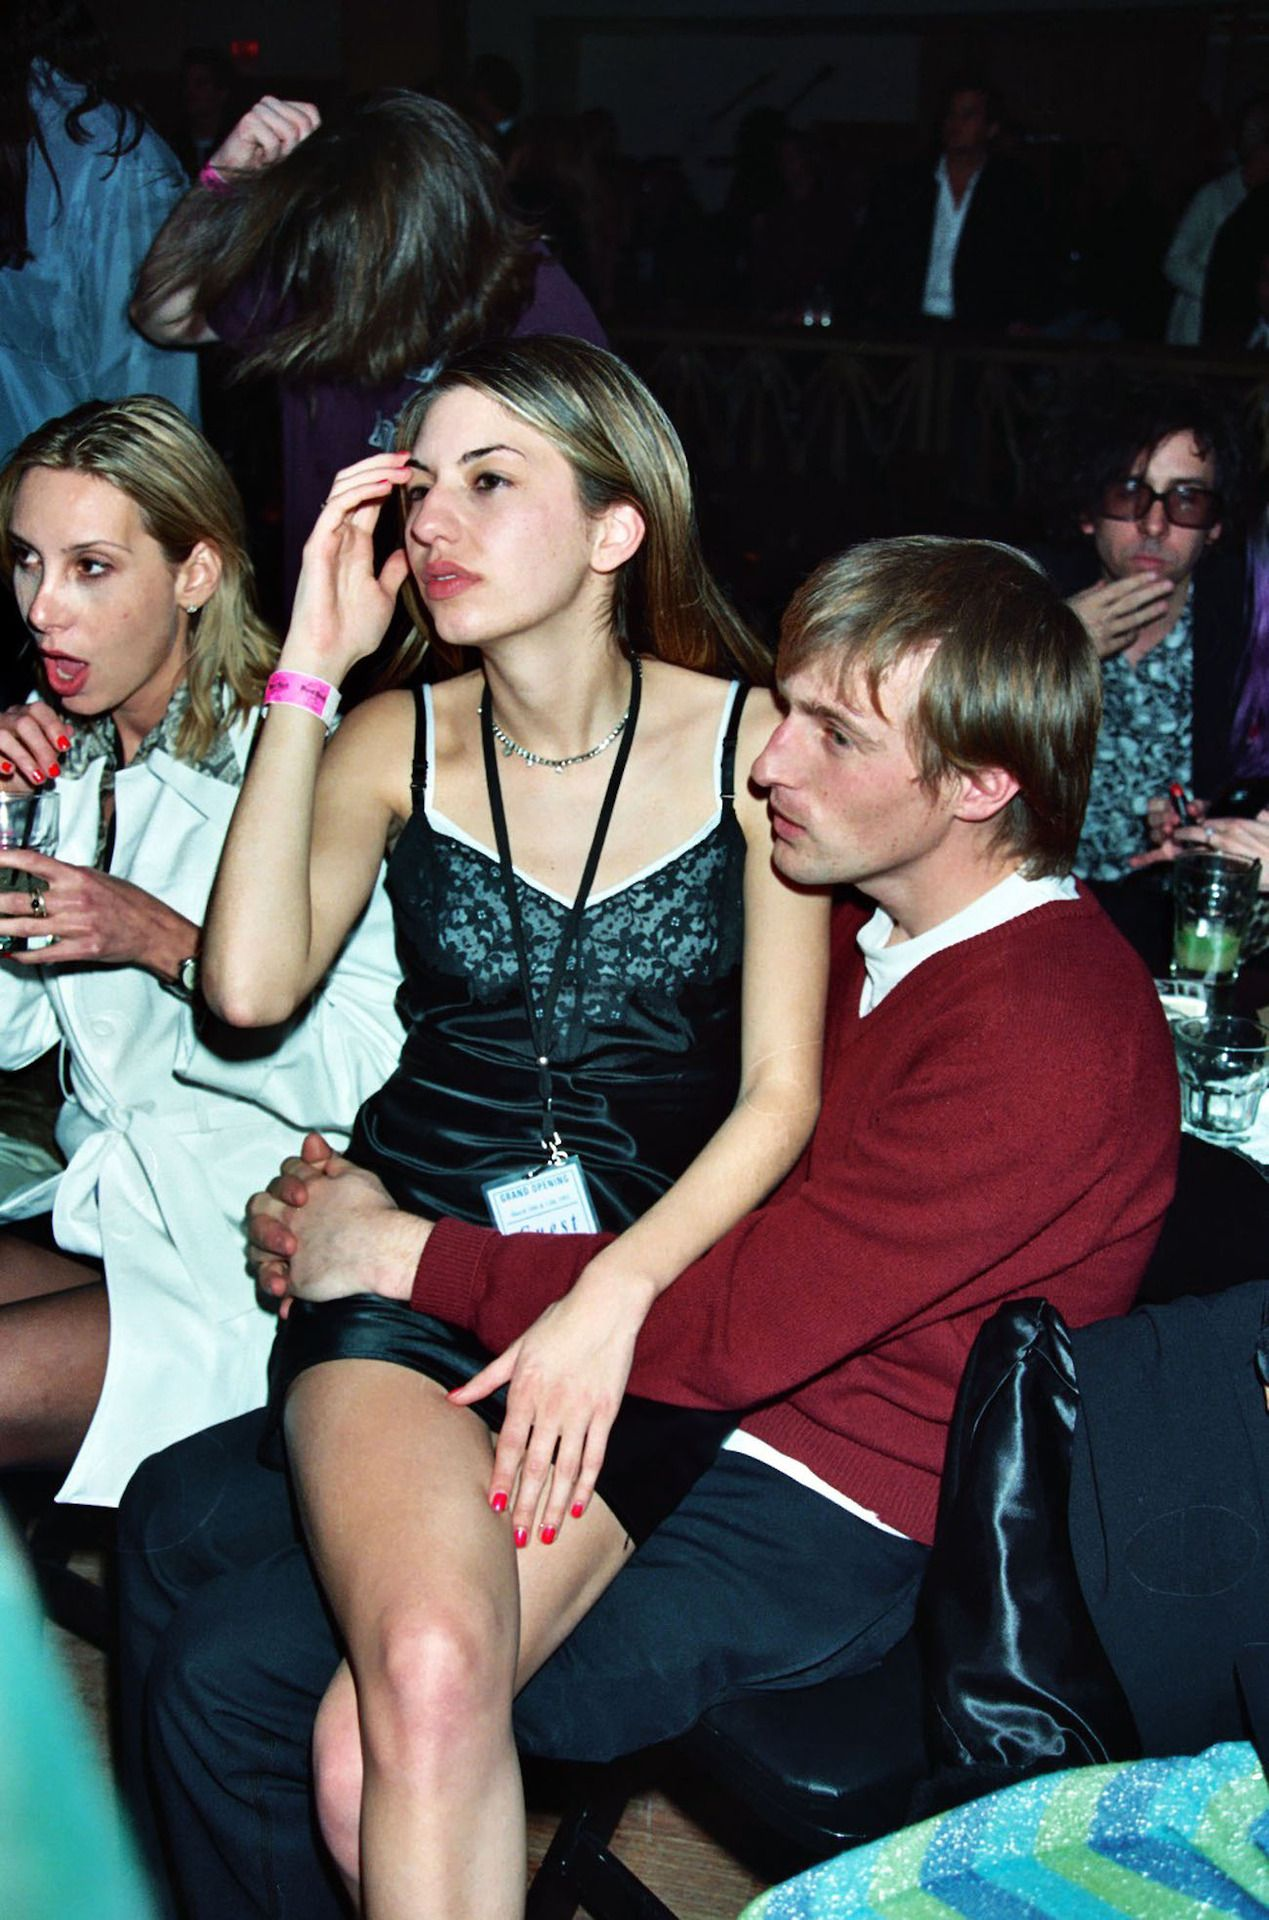 Sofia Coppola with Spike Jonze in 1995. Never mind Tim Burton is in the back haha